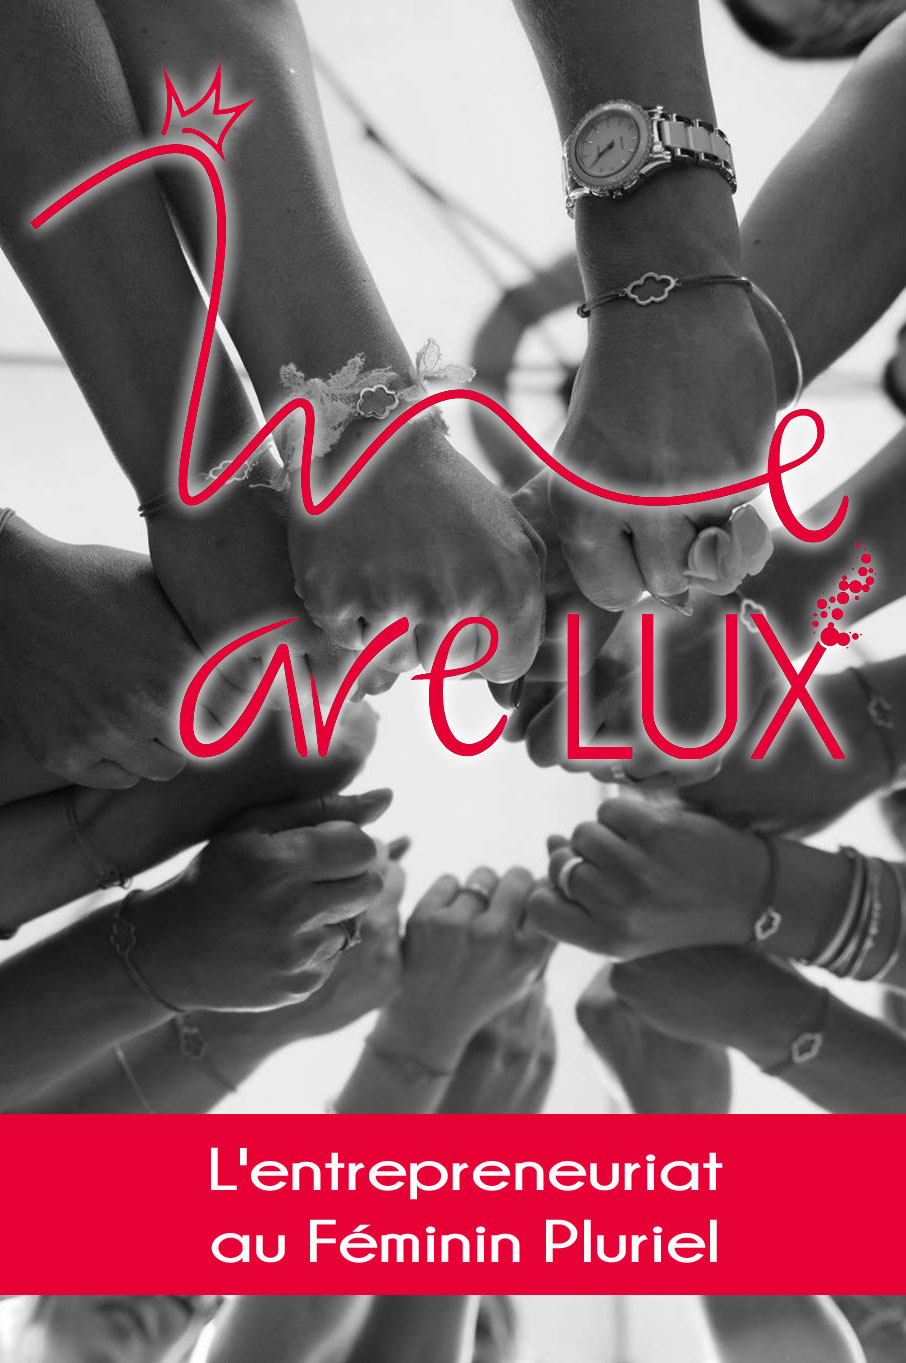 We are LUX